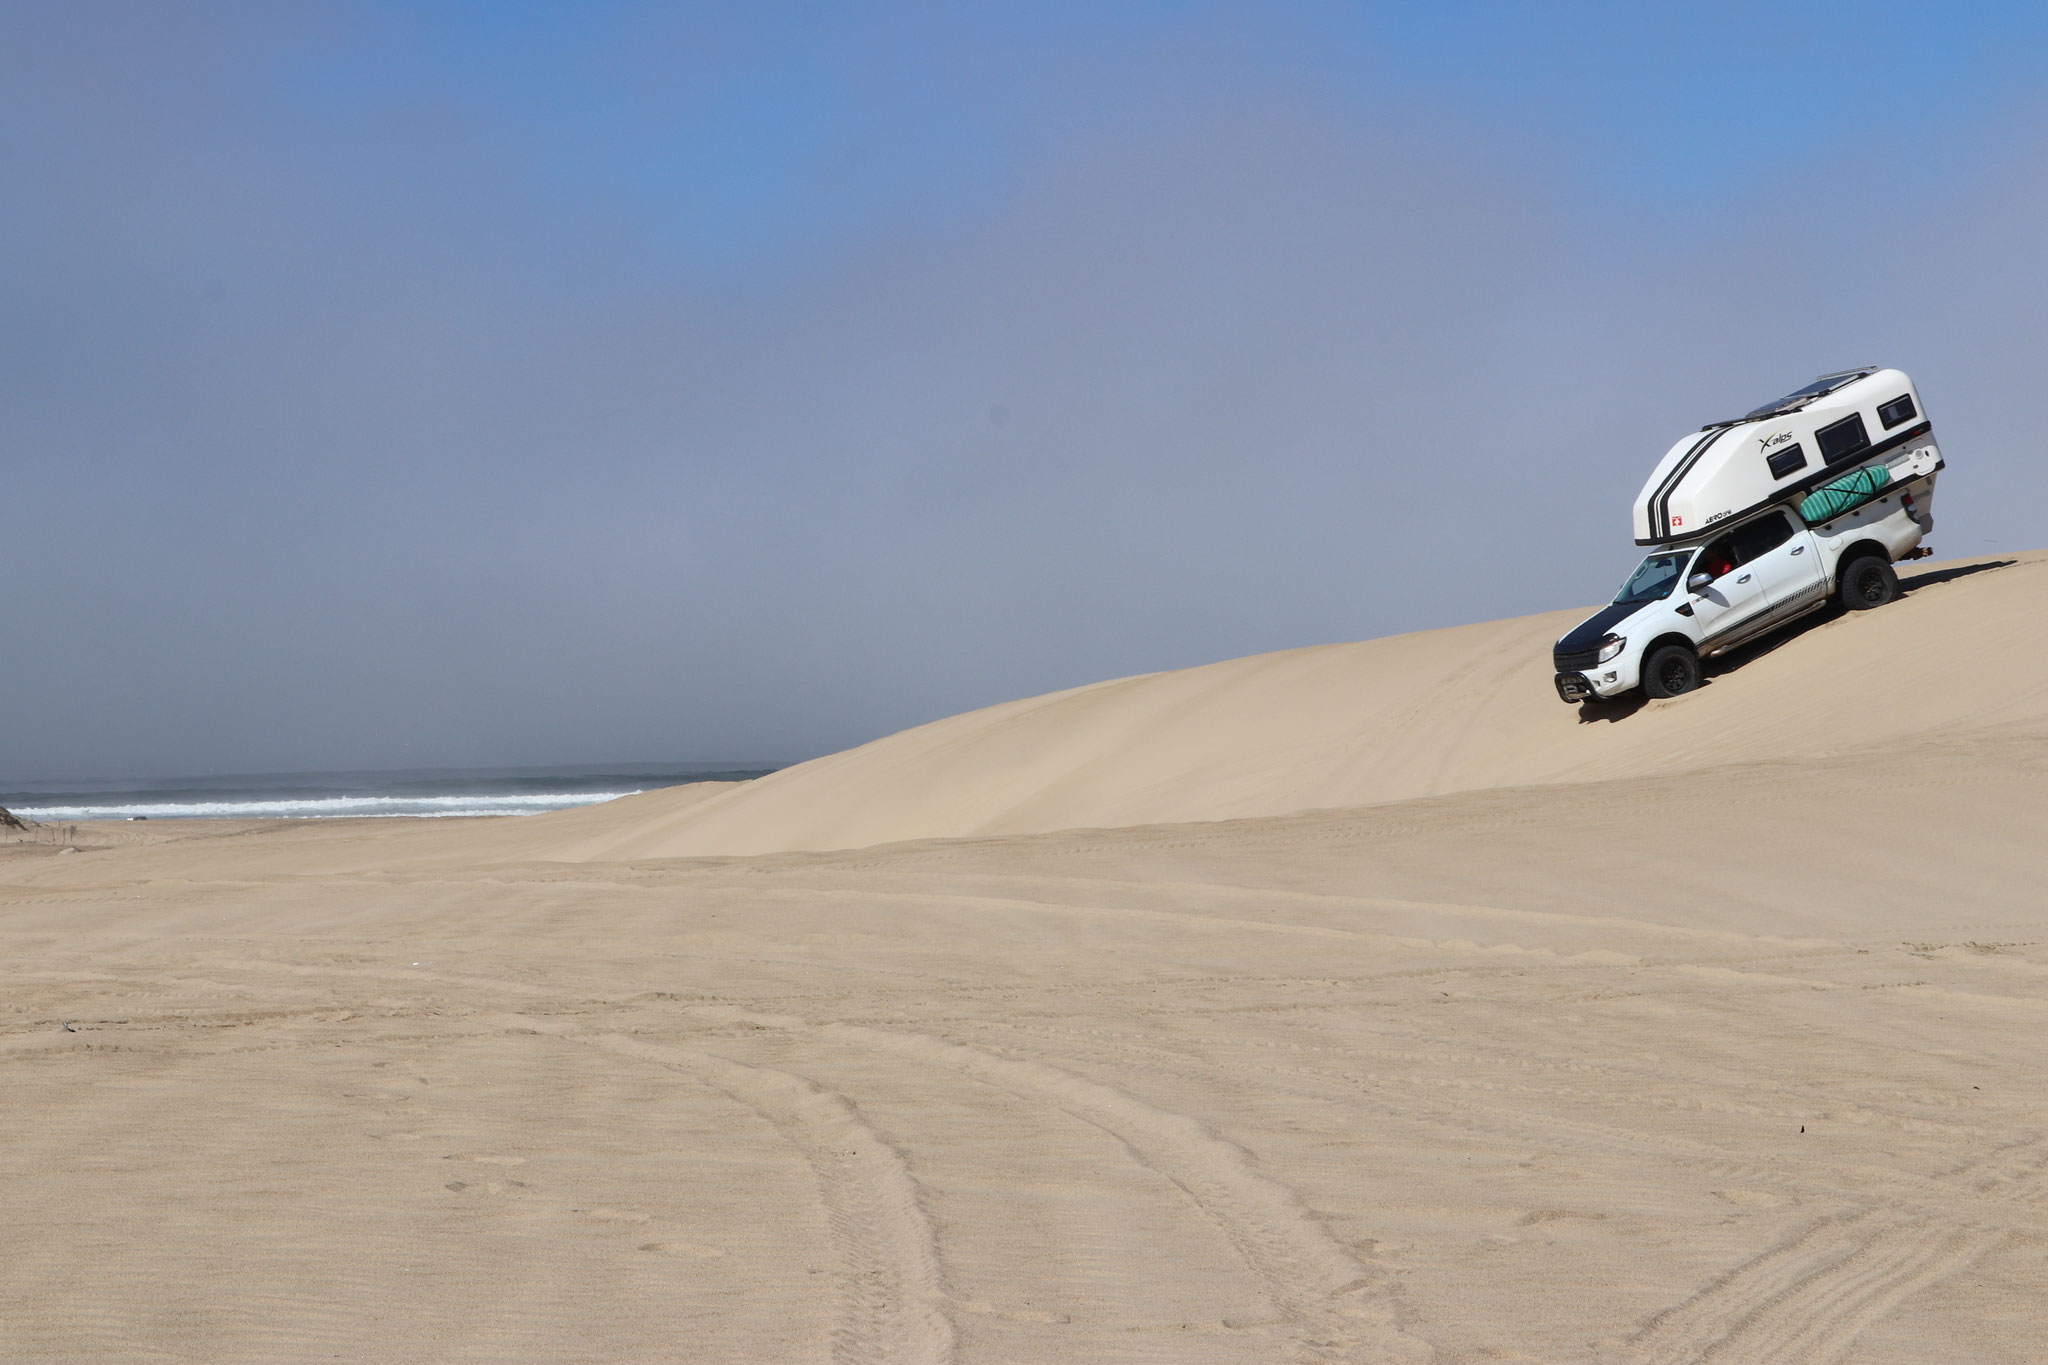 ...driving our camper truck up and over the dunes - good practice for Baja Beach's (MEX)